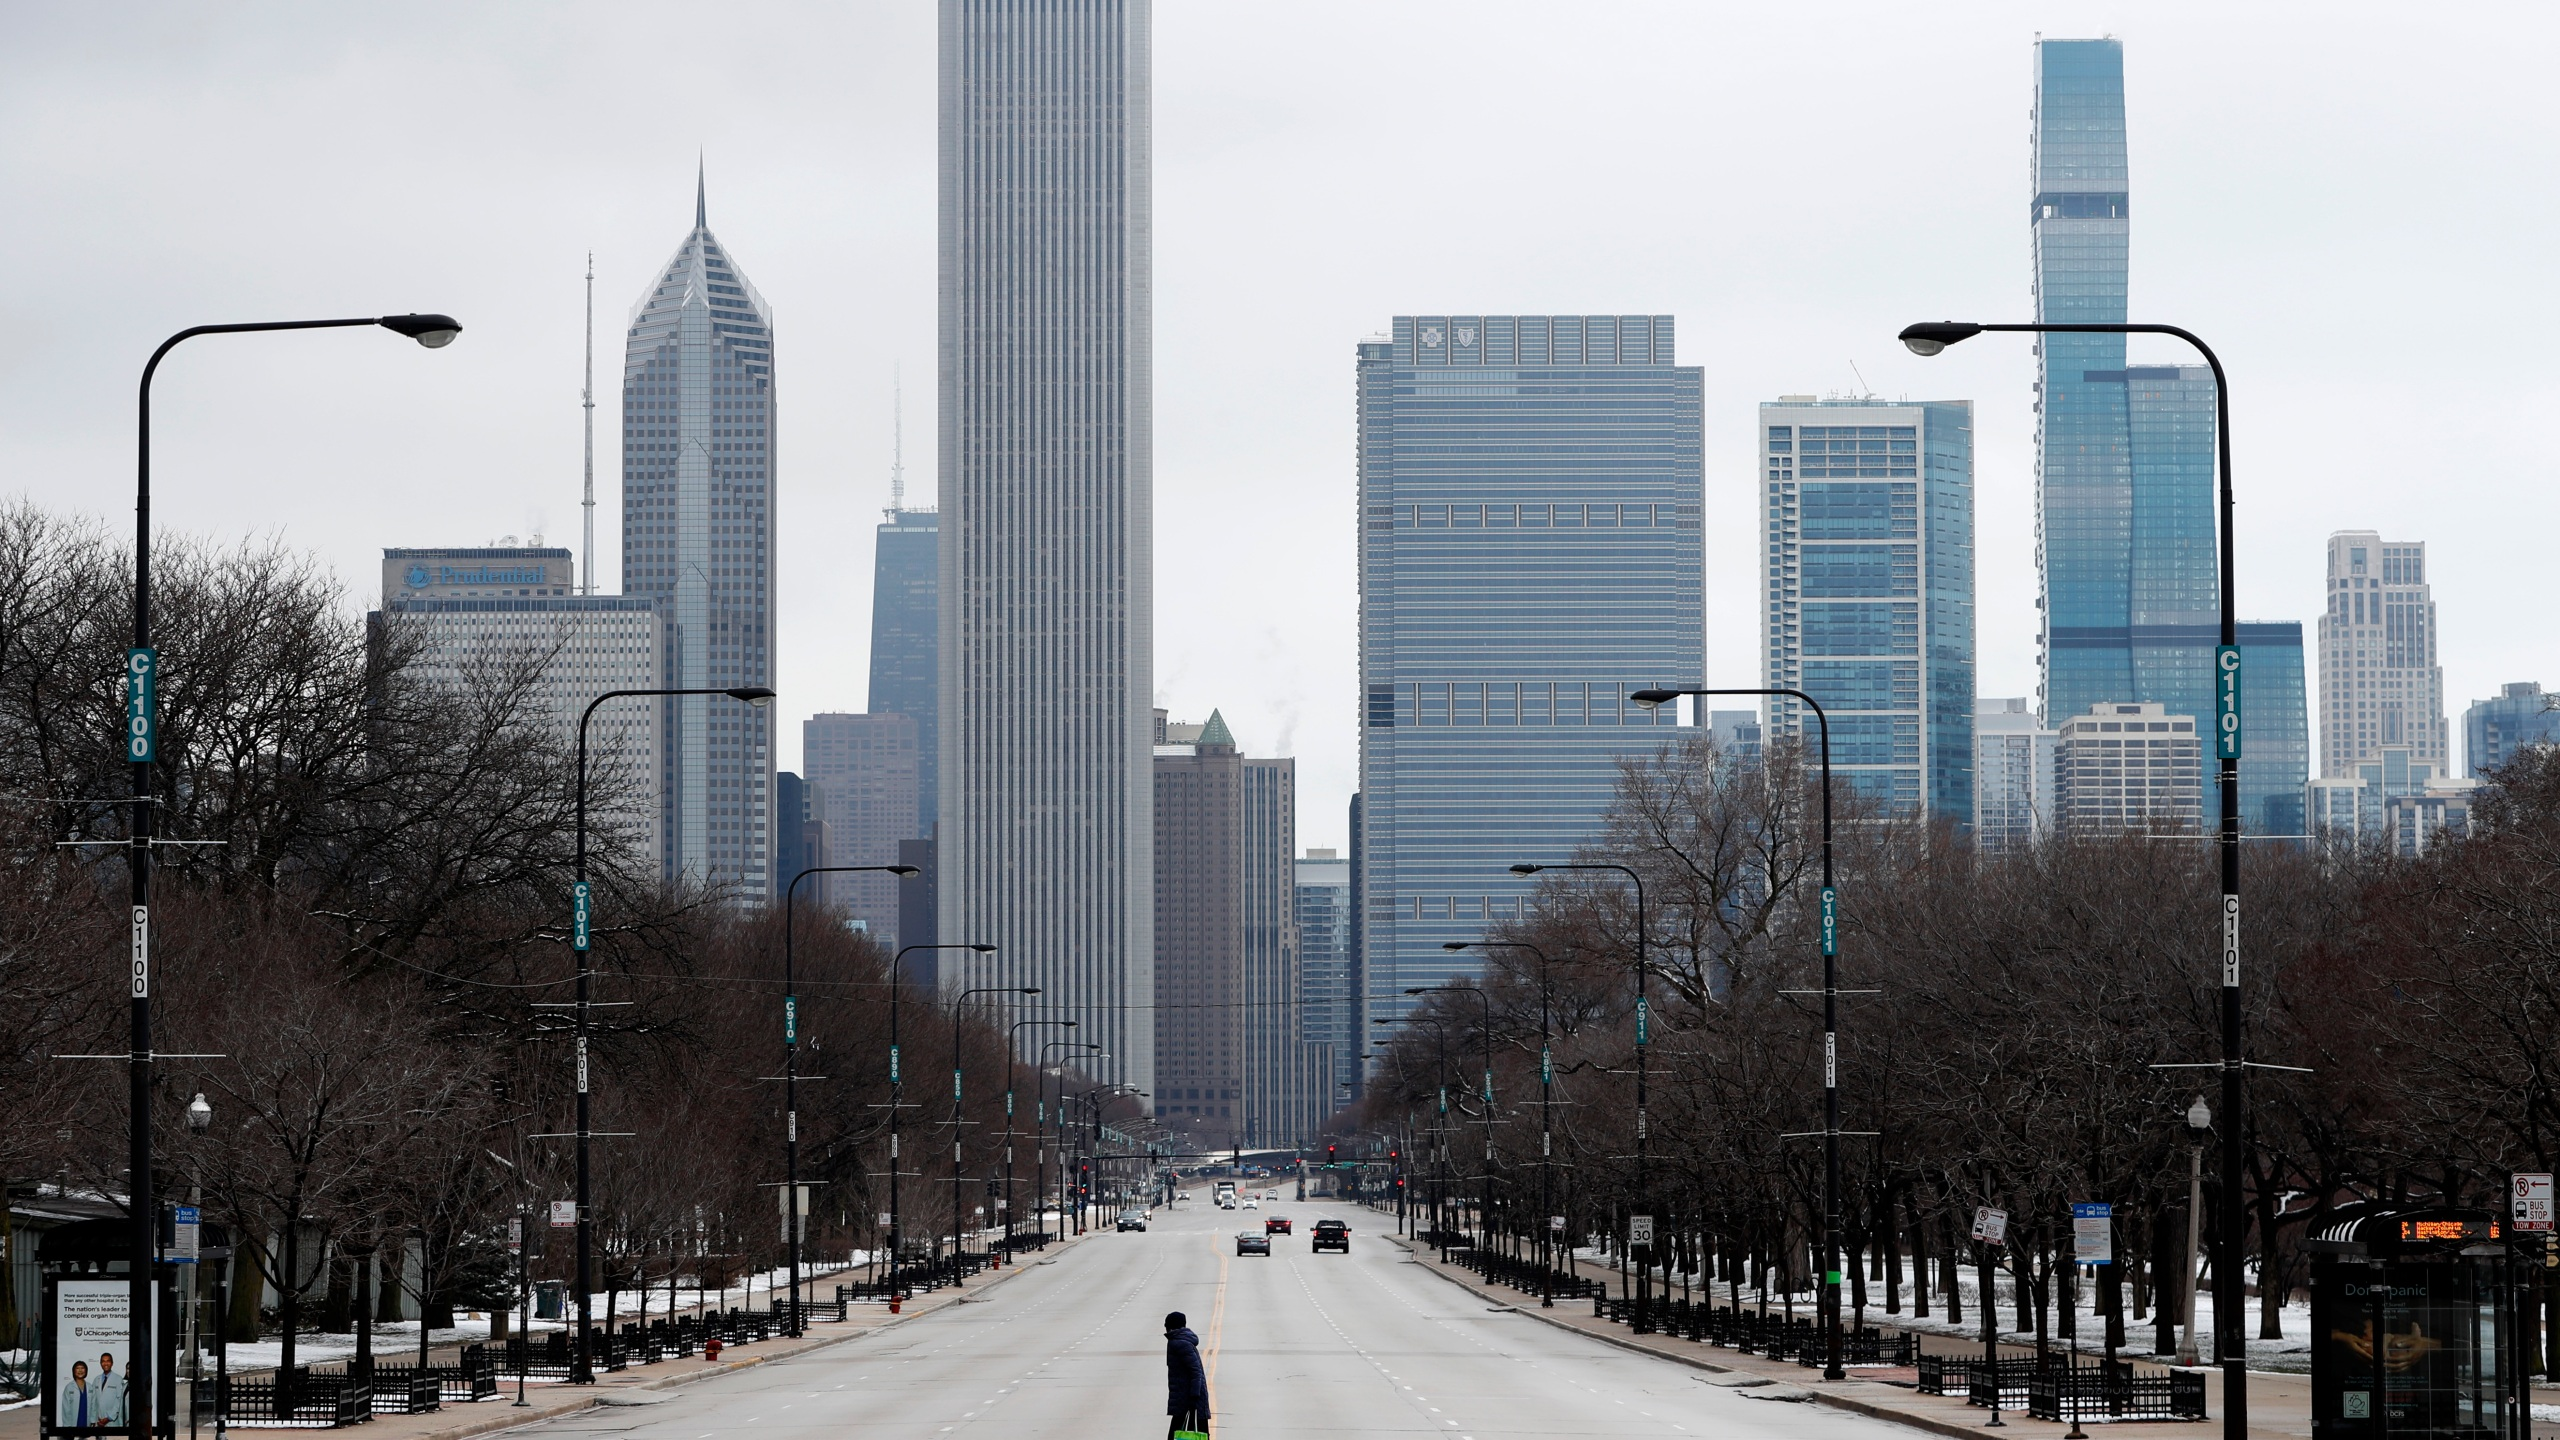 A woman walks across the usually busy Columbus Drive that splits Chicago's Grant Park in half, on the first work day since Illinois Gov. J.B. Pritzker gave a shelter in place order last week. Pritzker says Illinois is not receiving enough medical supplies in its fight against the coronavirus. (AP Photo/Charles Rex Arbogast)